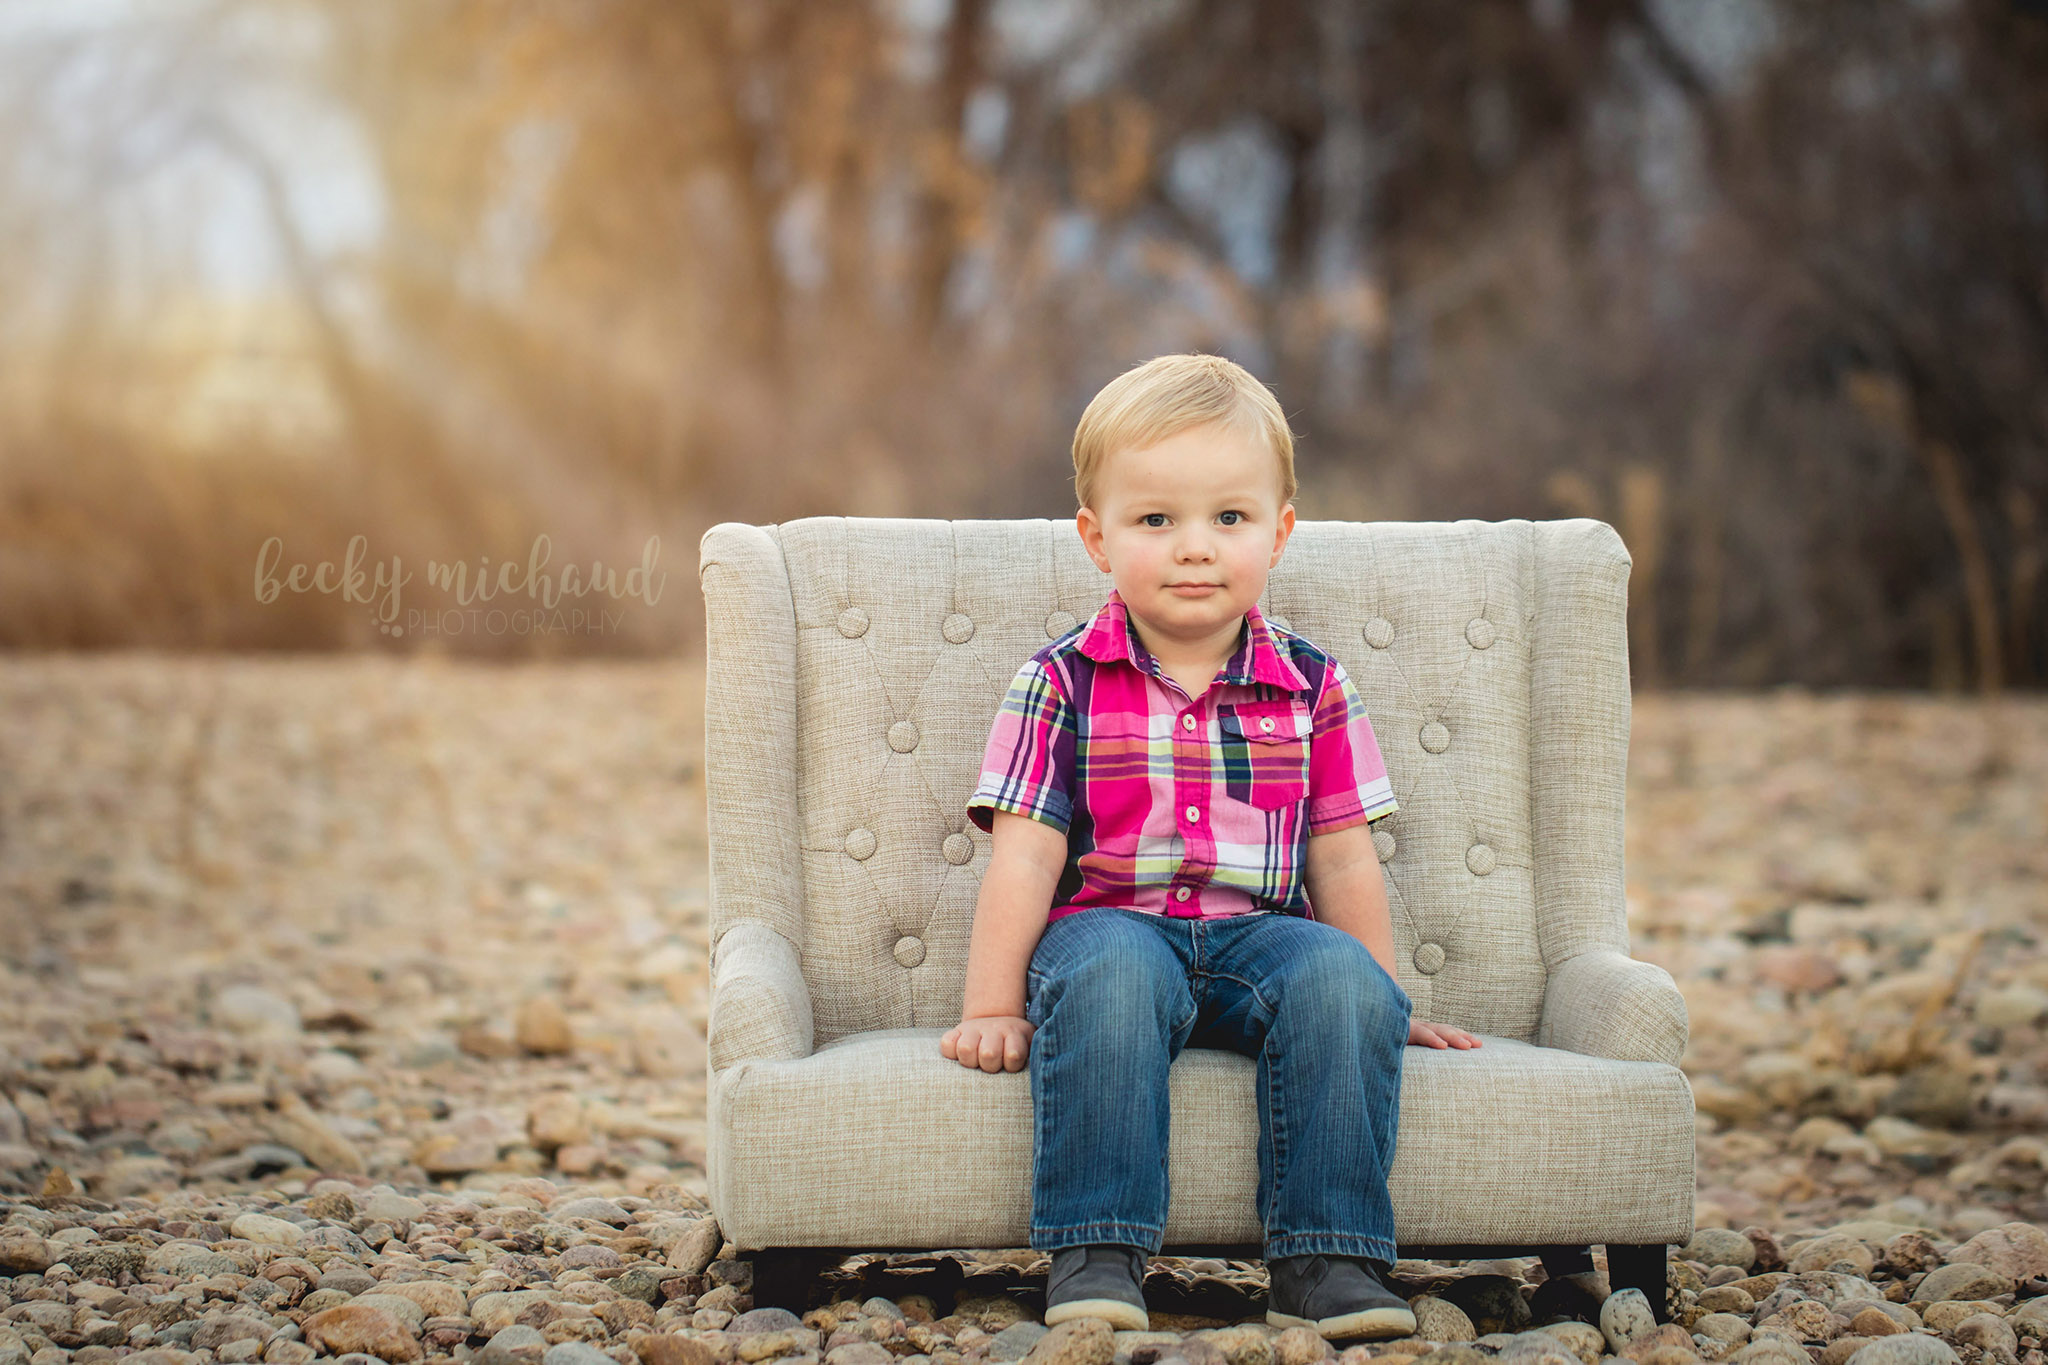 Becky Michaud, Northern Colorado photographer, takes a photo of a little boy on a couch